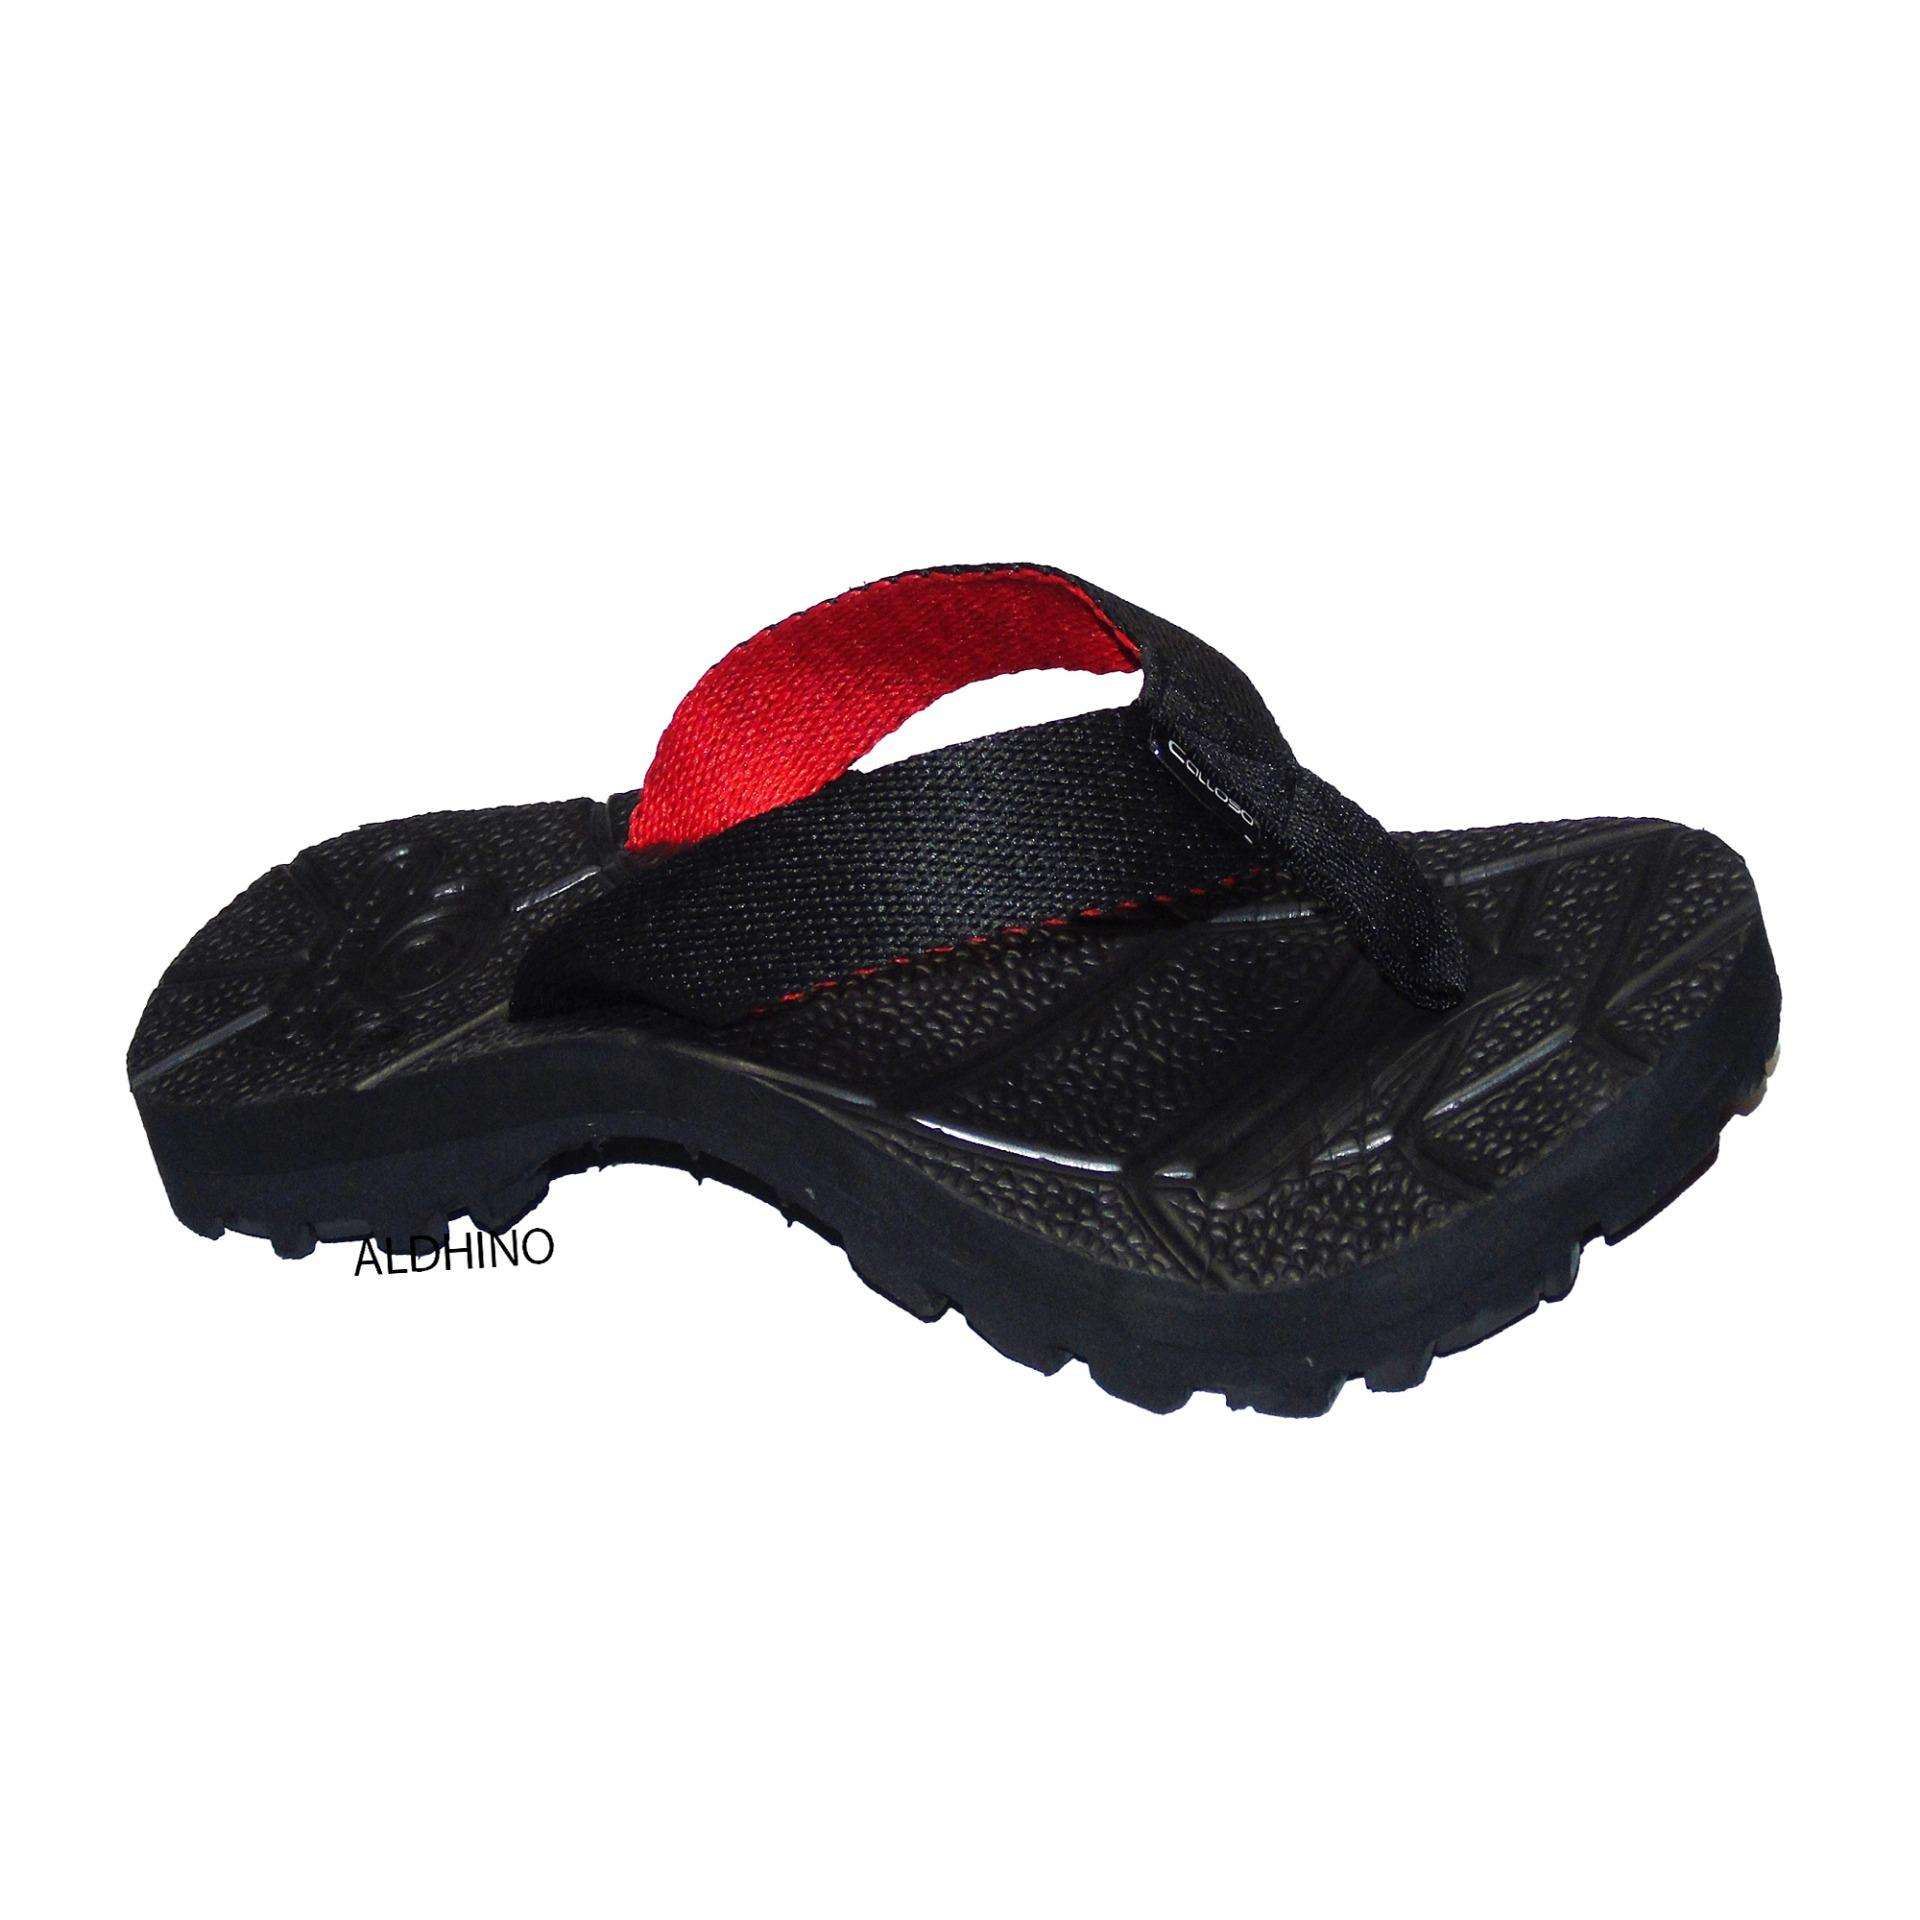 Aldhino Collection Sandal Gunung  CJP 01 - HTM